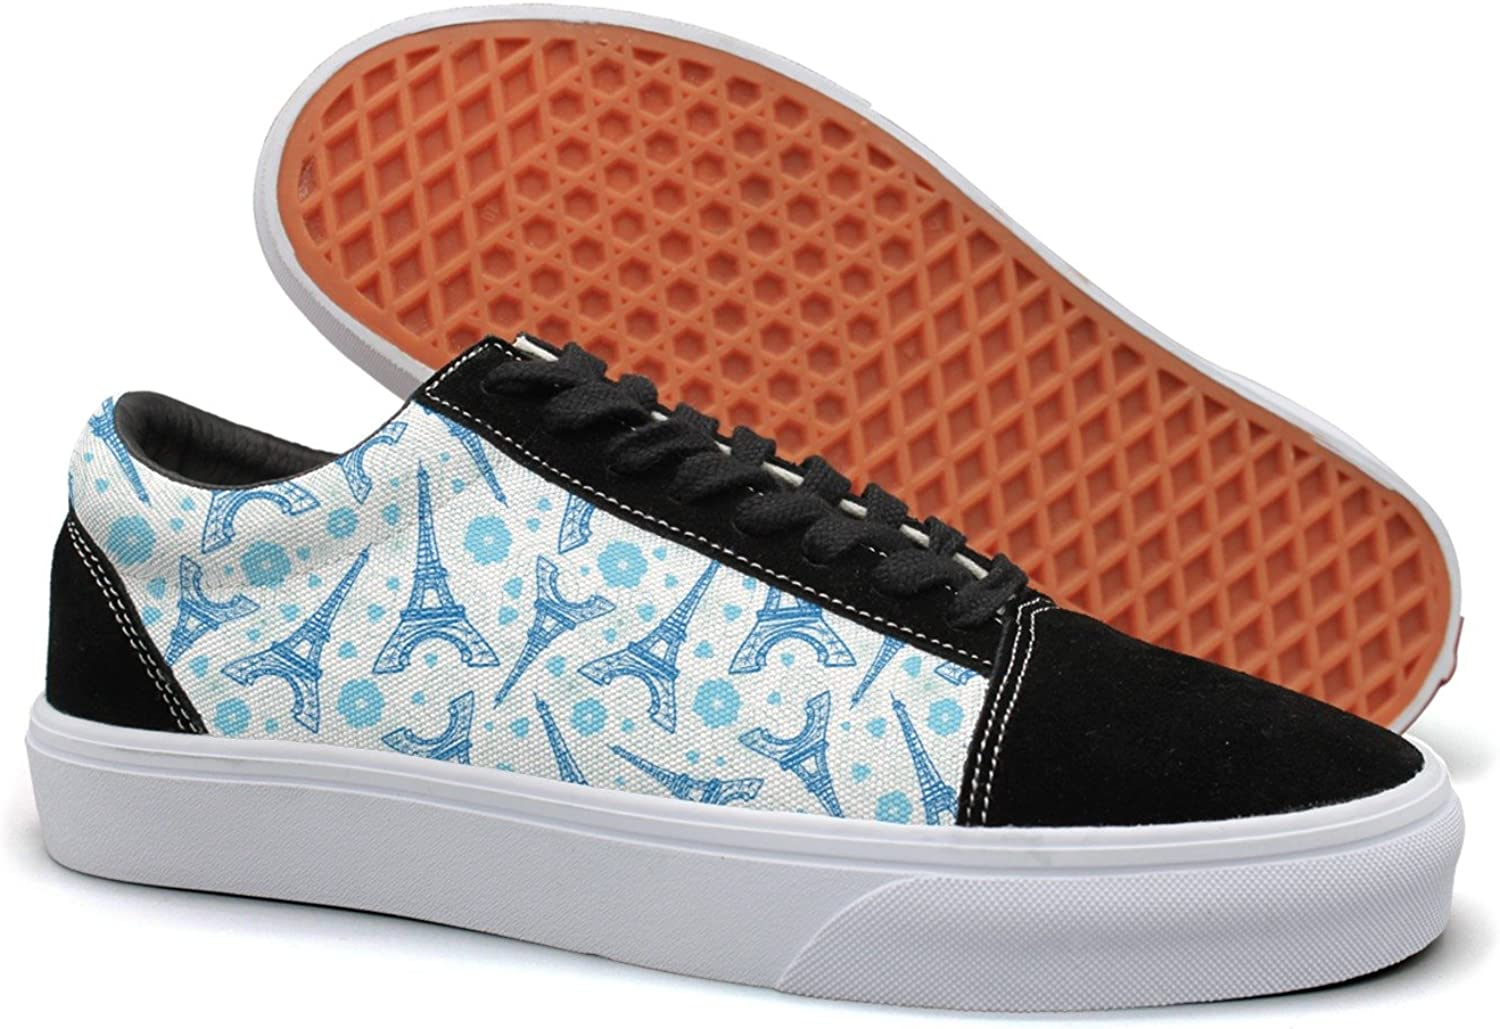 Feenfling bluee Eiffel Tower Paris and Daisy Plant Womens Flat Suede Canvas Low Top Sneakers shoes